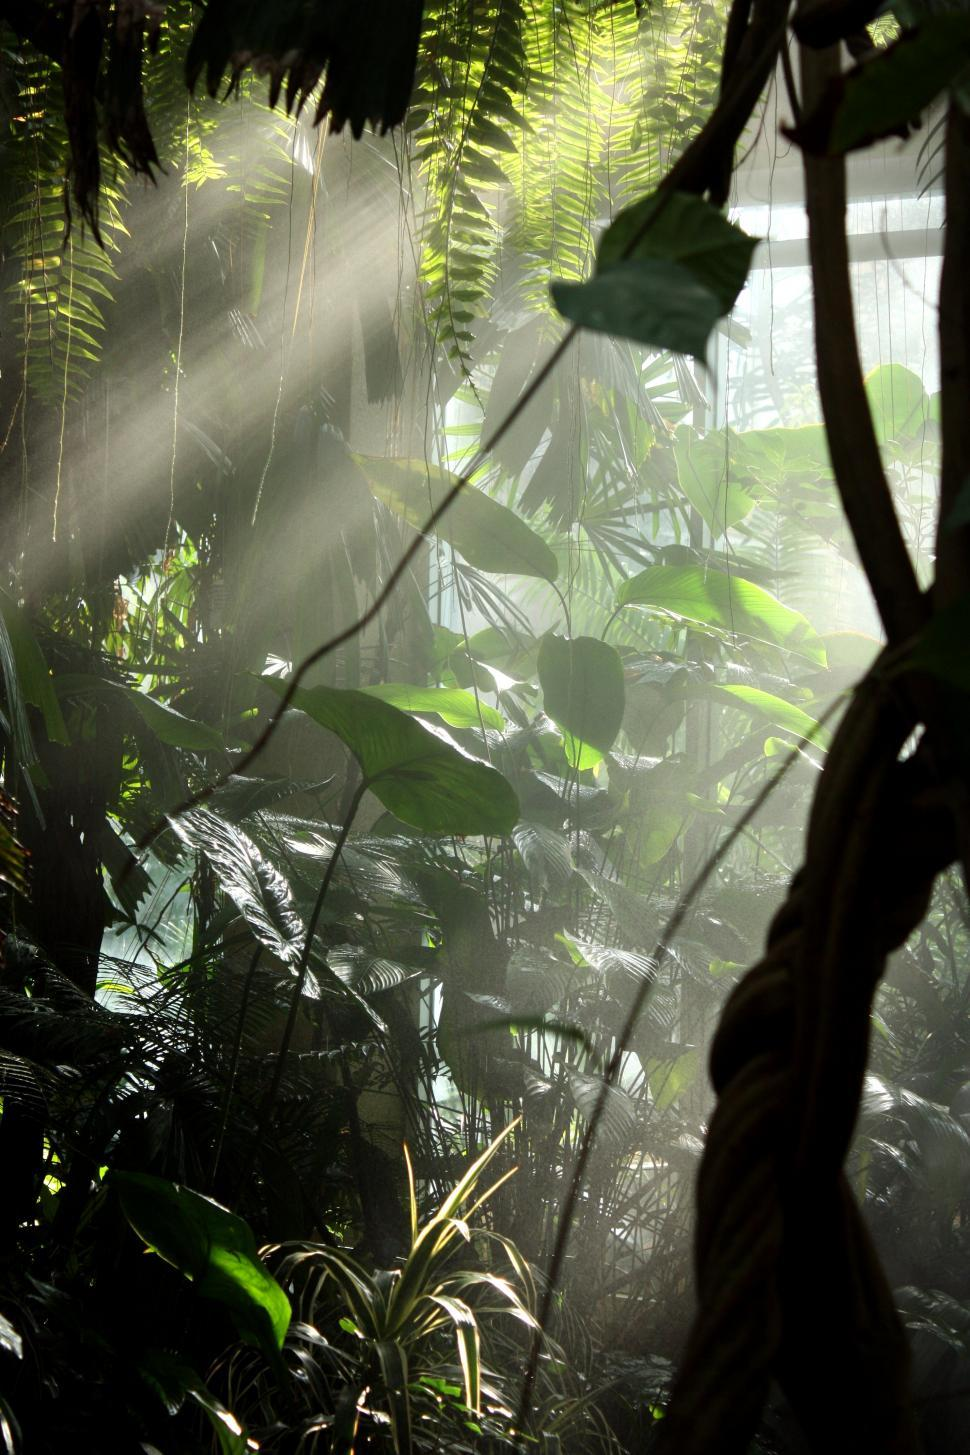 Download Free Stock HD Photo of Sunlight shining through mist and tropical foliage Online